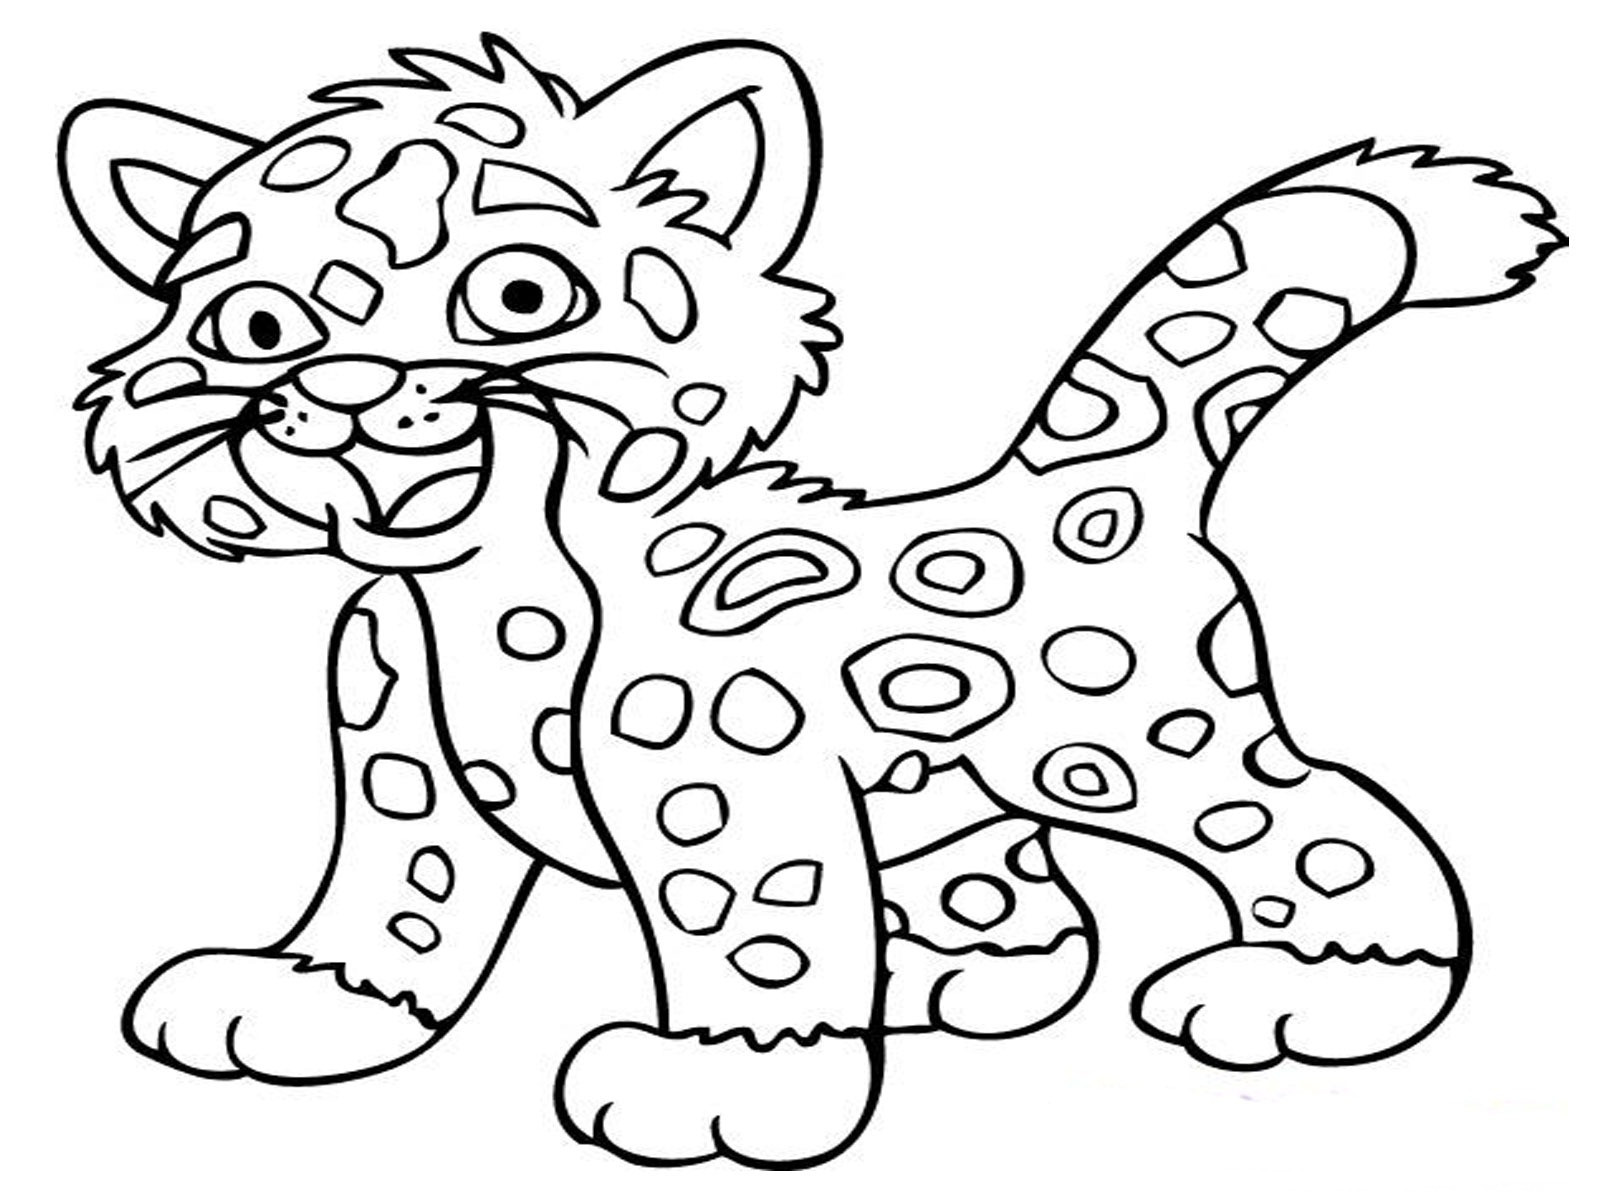 Printable Animal Coloring Pages For Kids  Animal Coloring Pages 9